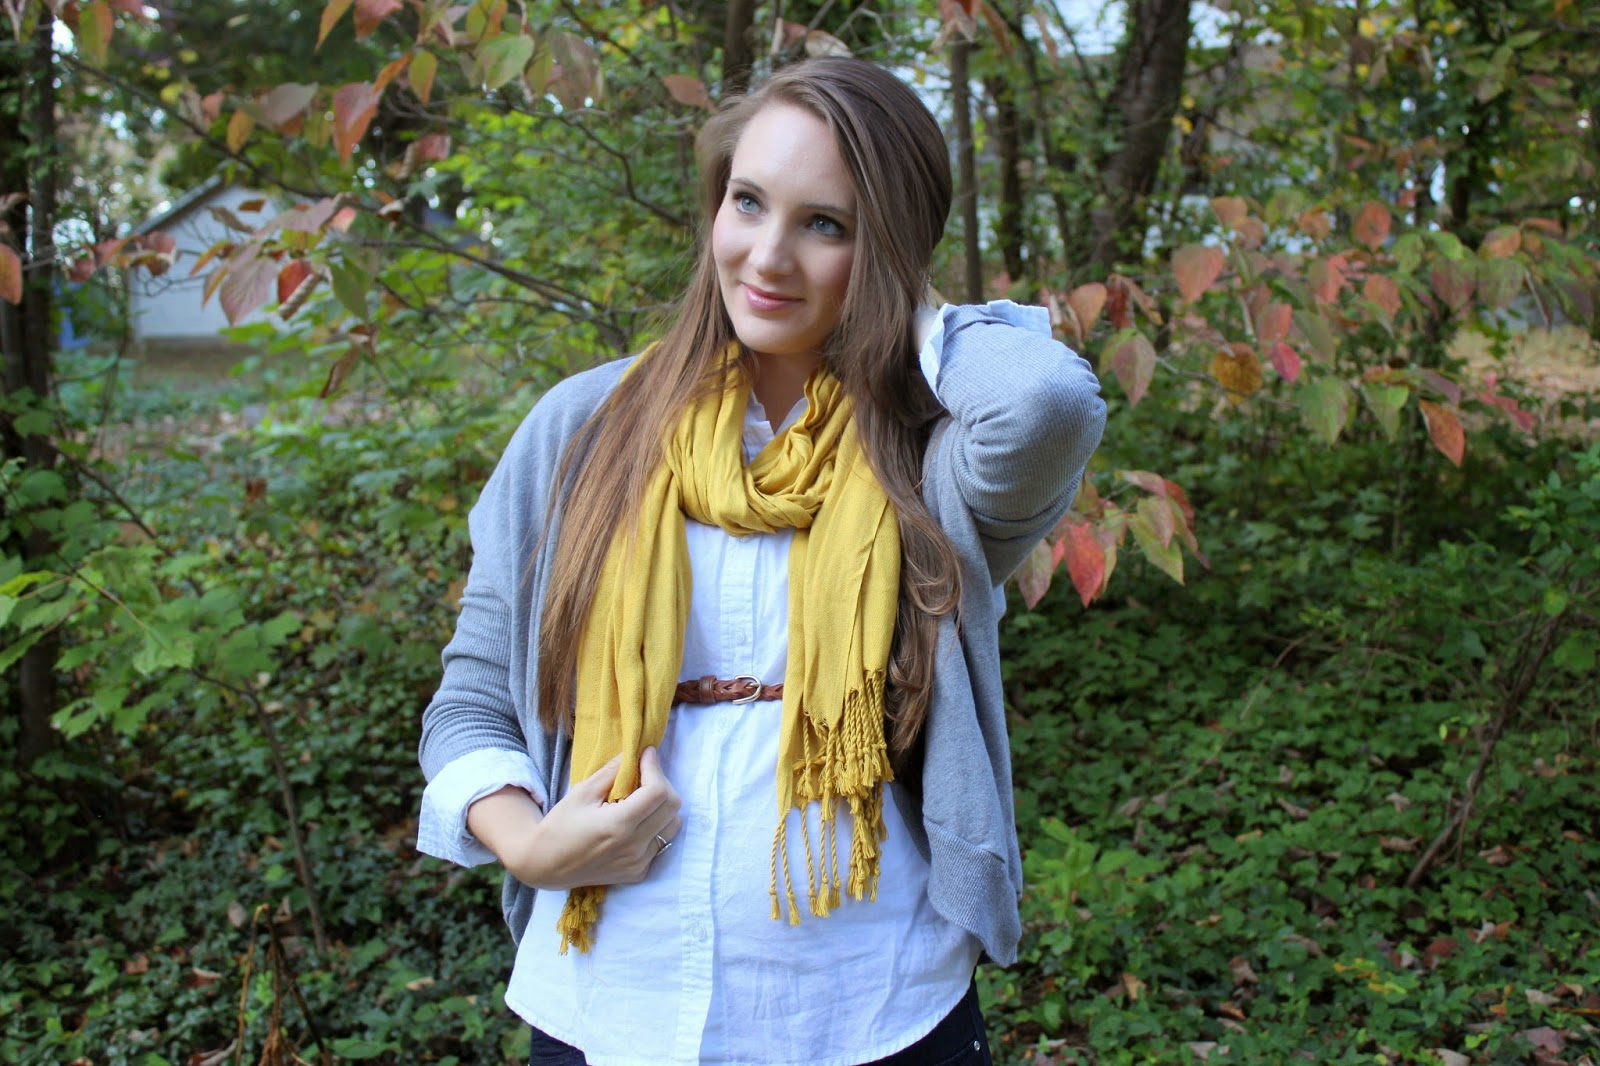 maternity, maternity fashion, fall clothes, fall style, fall fashion, scarves, boots, boot cuffs, fall sweaters, fall trends, mustard scarf, scarves, cute fall clothes, fall